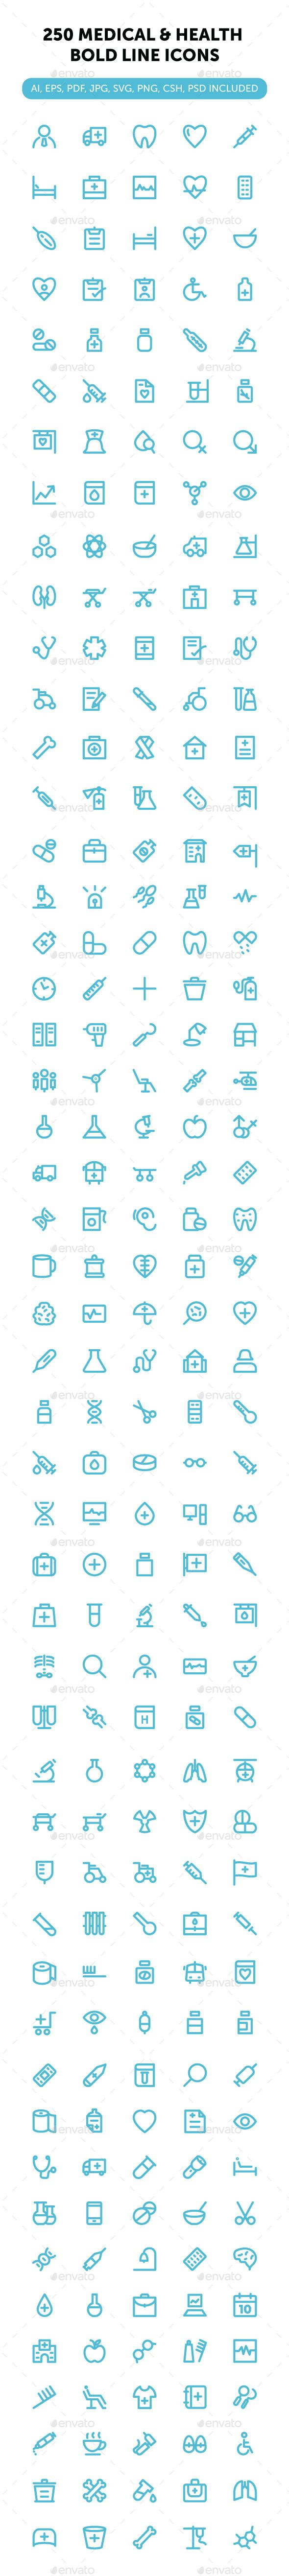 250 Medical and Health Bold Line Icons - Icons